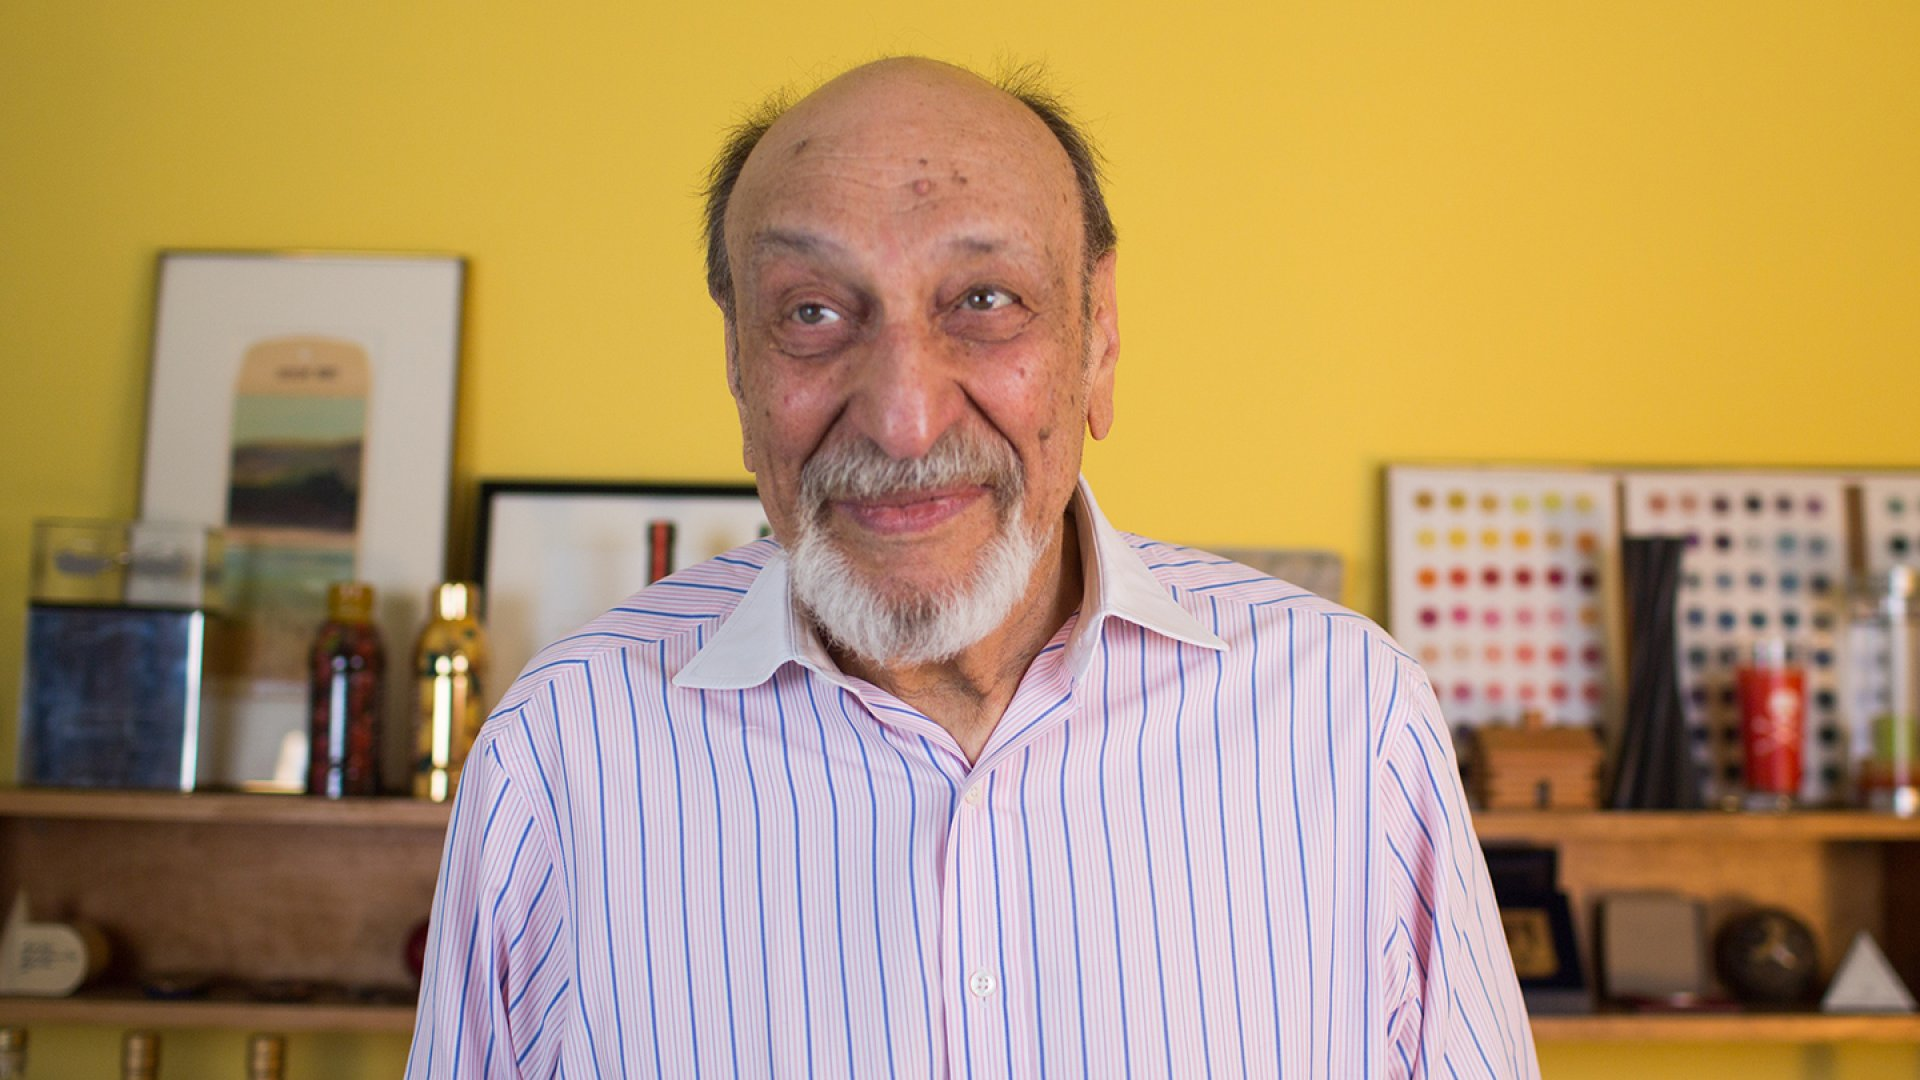 Milton Glaser on Why You Should Only Work With People You Like